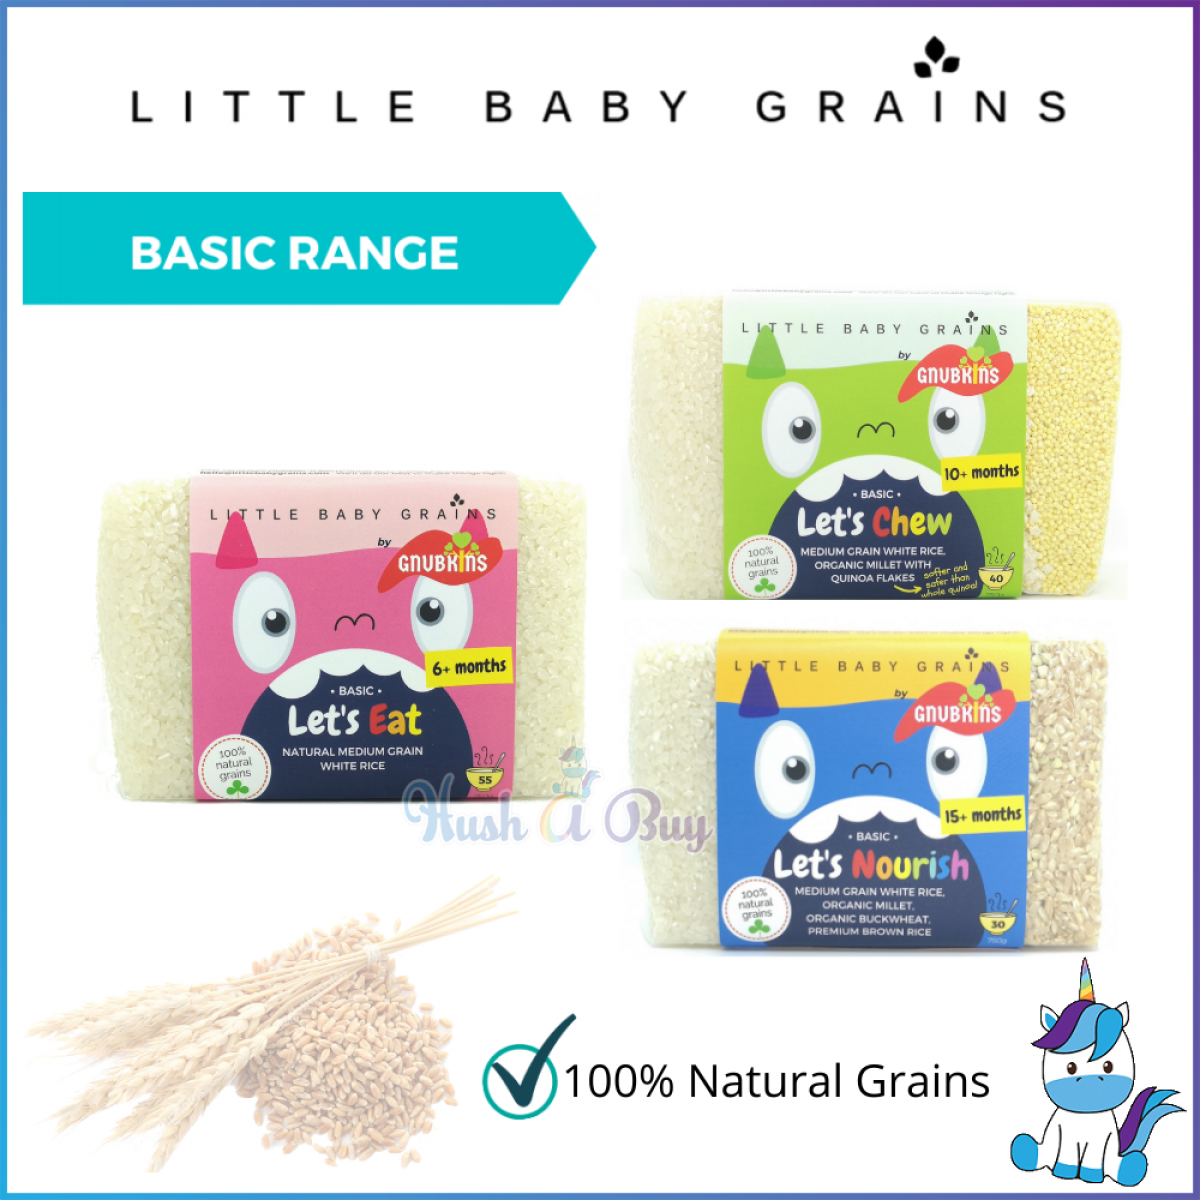 Little Baby Grains Basic Range 750g - Let's Eat / Let's Chew / Let's Nourish (From 6+ months - 15+ months)